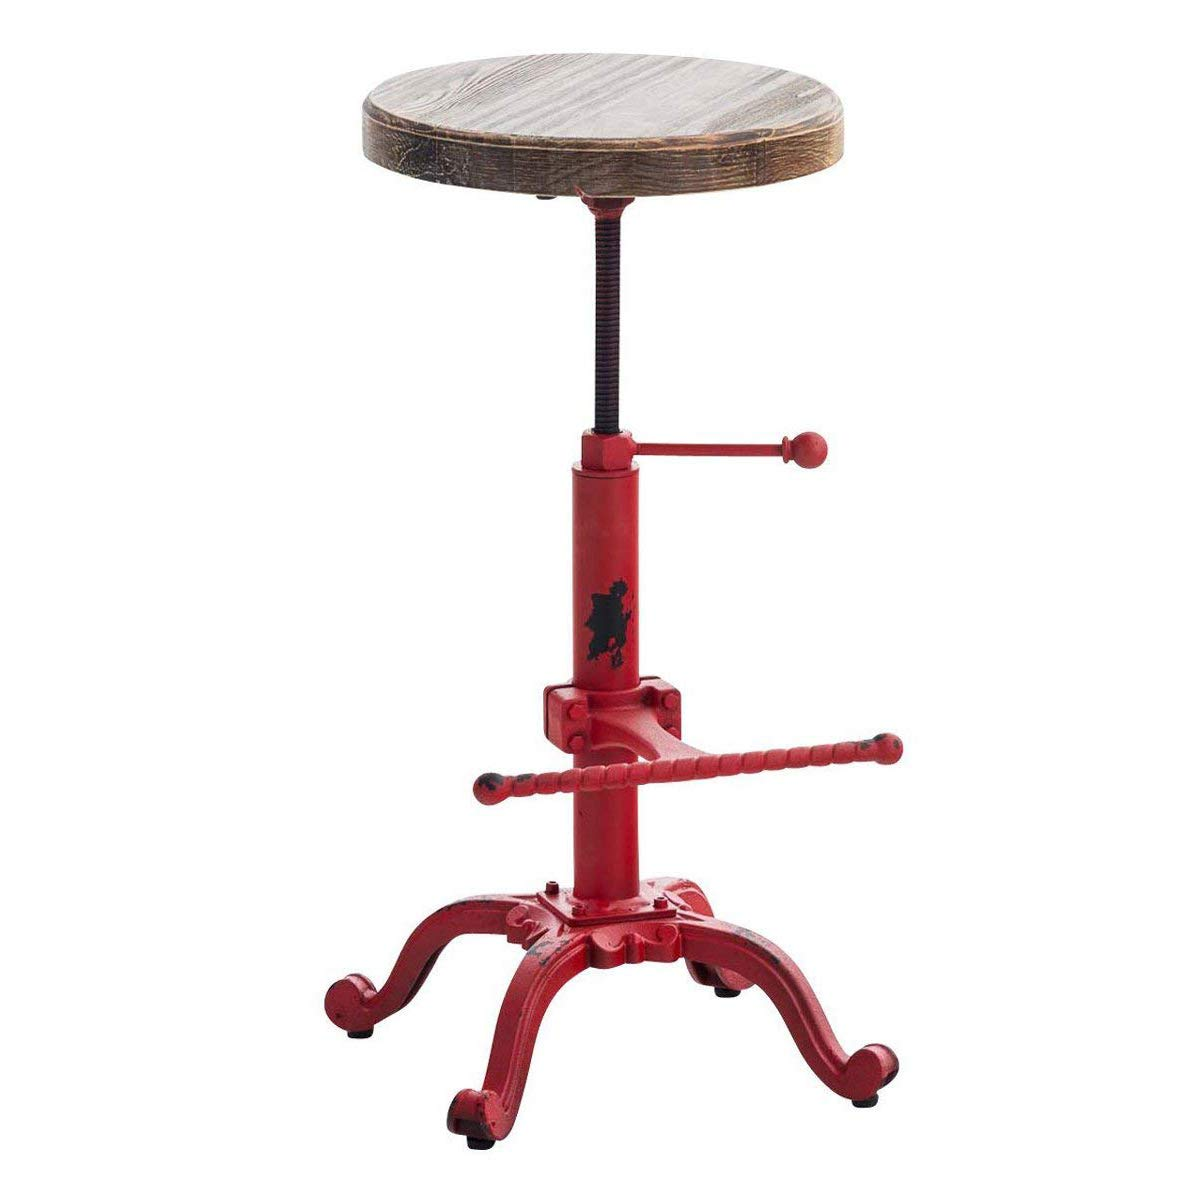 Topower Industrial Retro Vintage Farm Wooden Tractor Stool Kitchen Swivel Height Adjustable bar Stool (Antique Red)